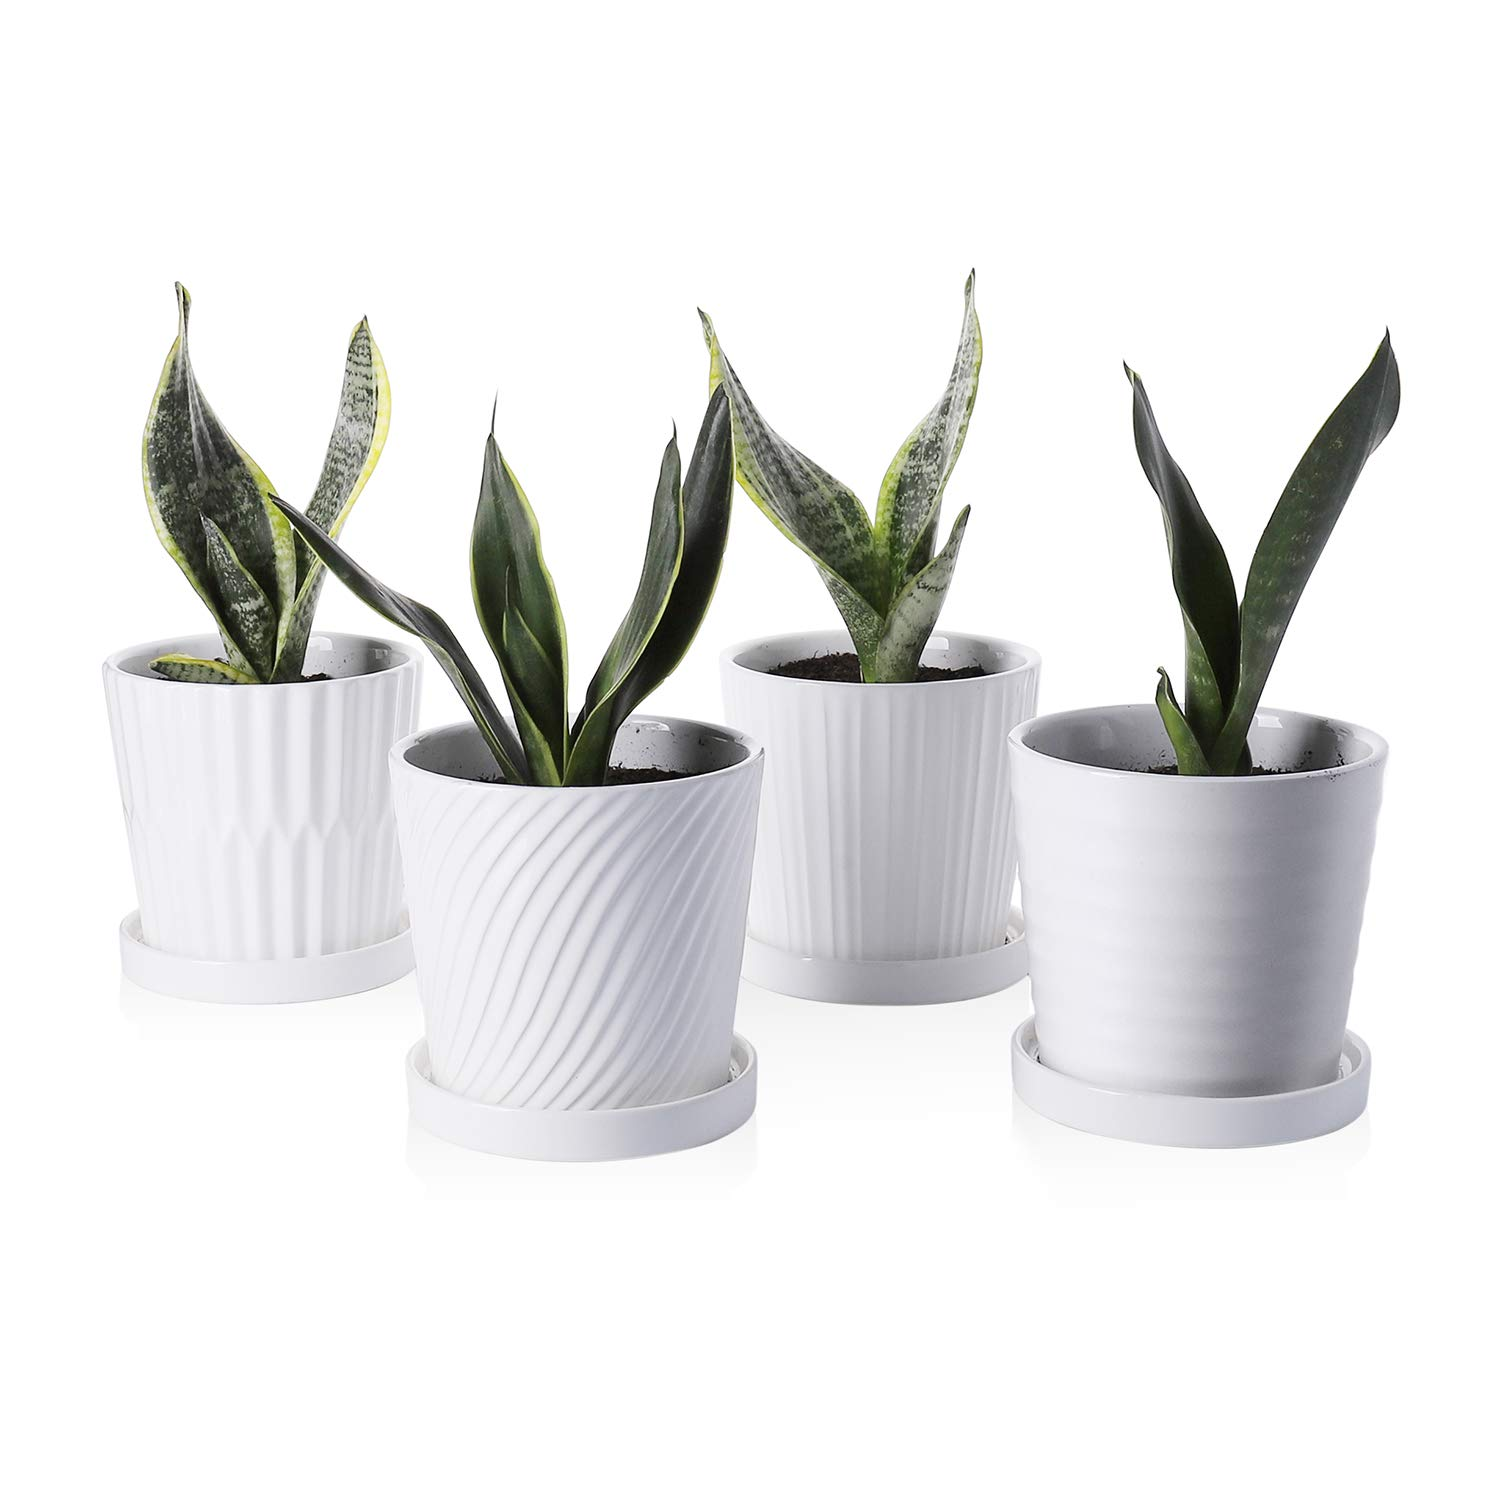 Greenaholics Plant Pots - 5.2Inch Cylinder Ceramic Planters with Connected Saucer, Pots for Succuelnt and Little Plants Set of 4, White